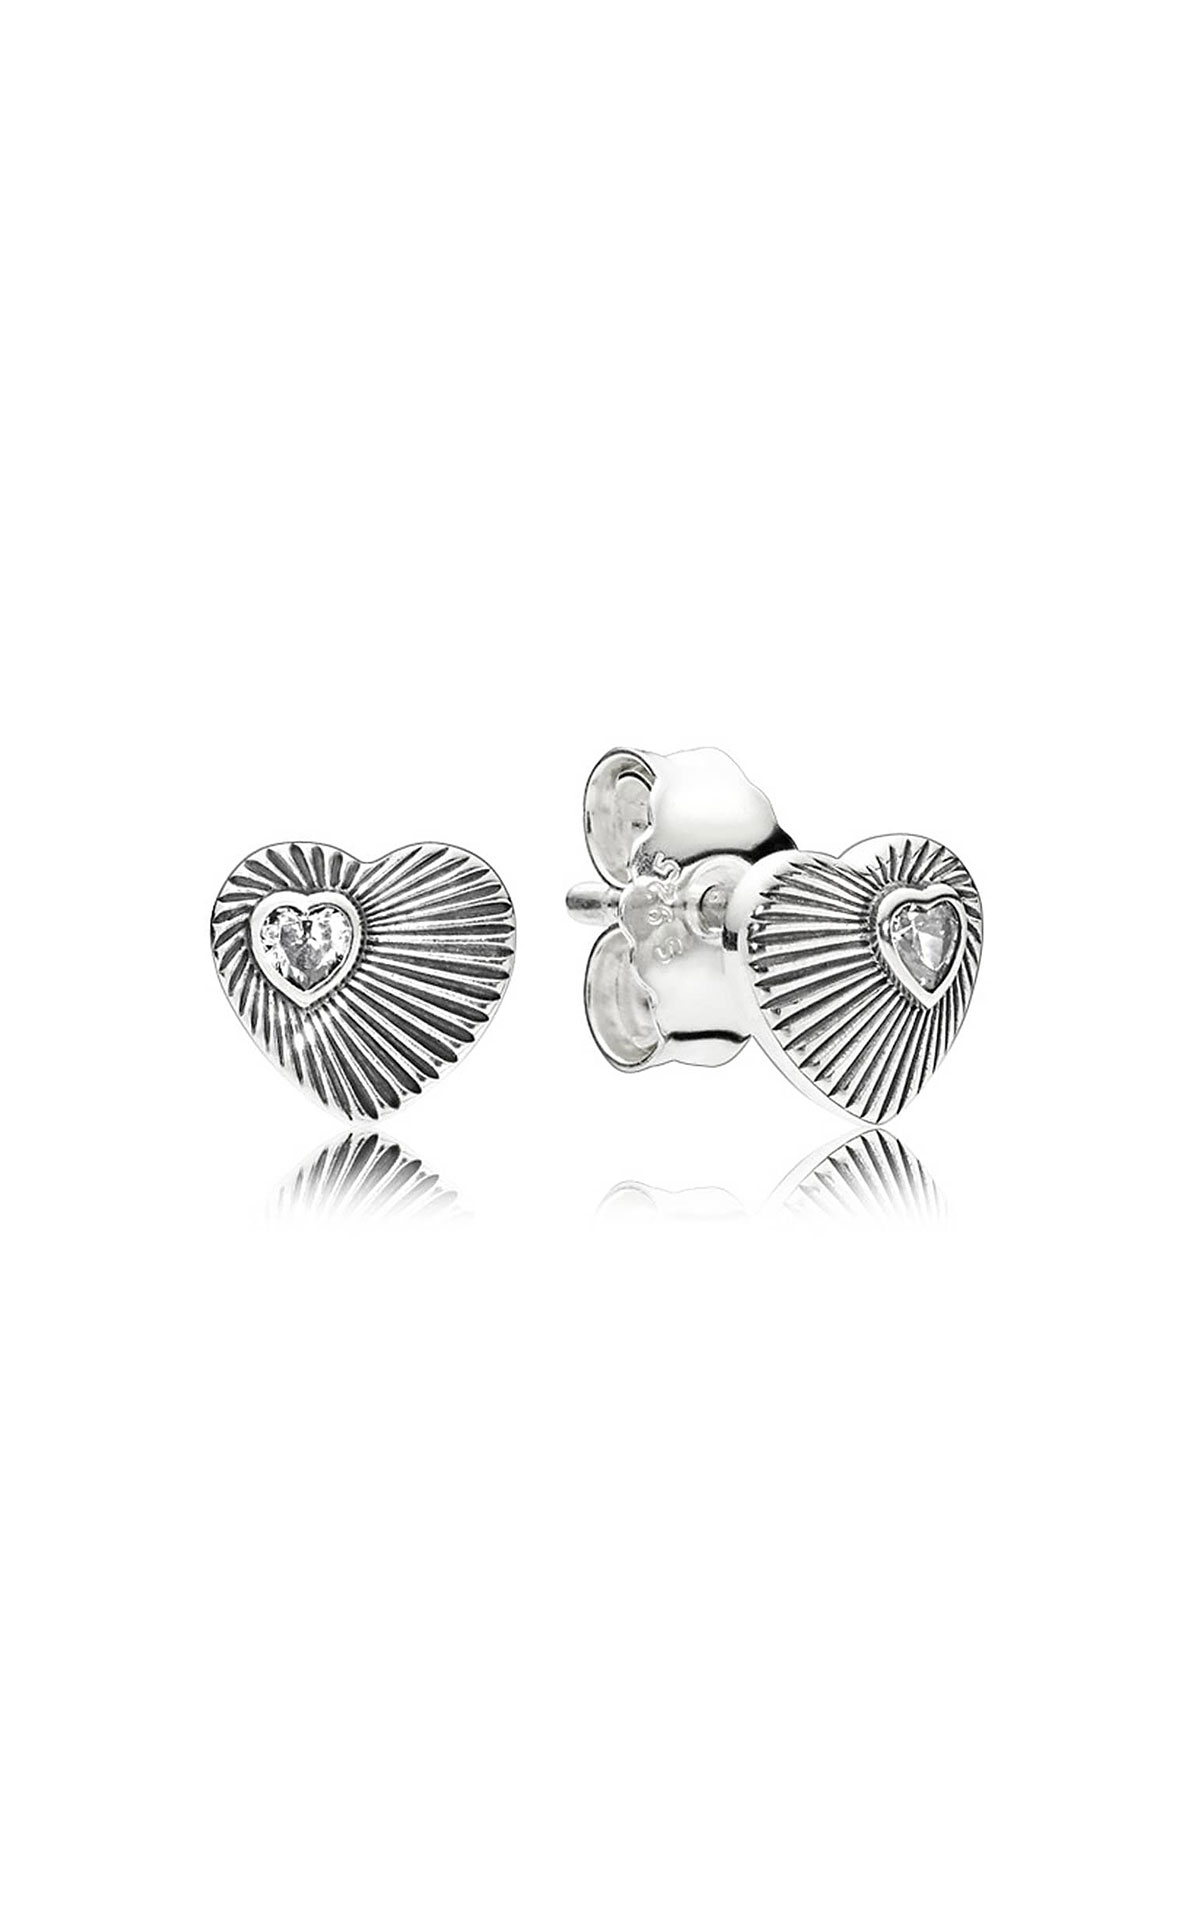 Pandora Vintage heart fan earrings from Bicester Village